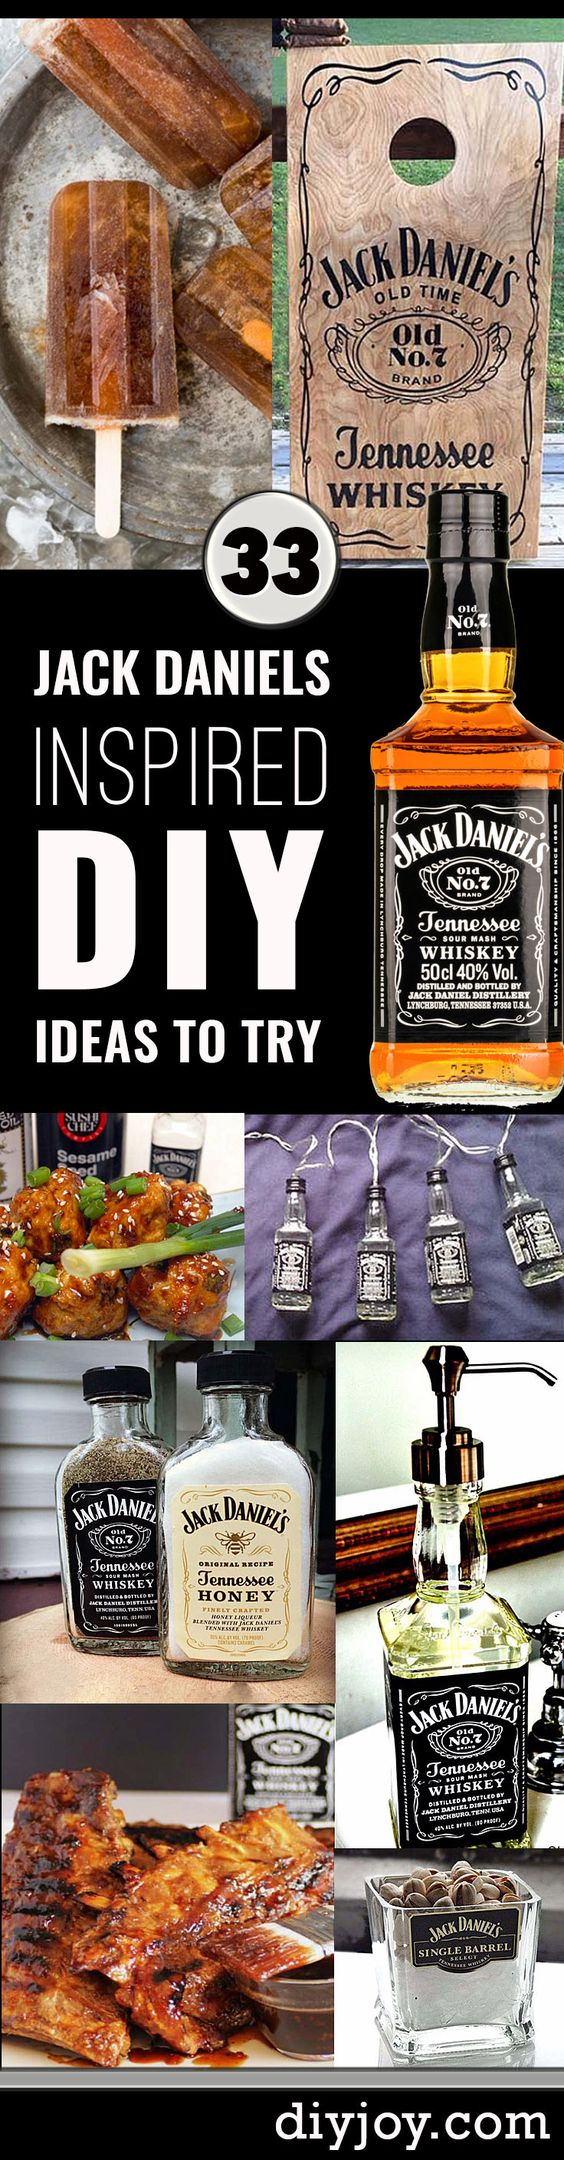 Fun DIY Ideas Made With Jack Daniels - Recipes, Projects and Crafts With The…